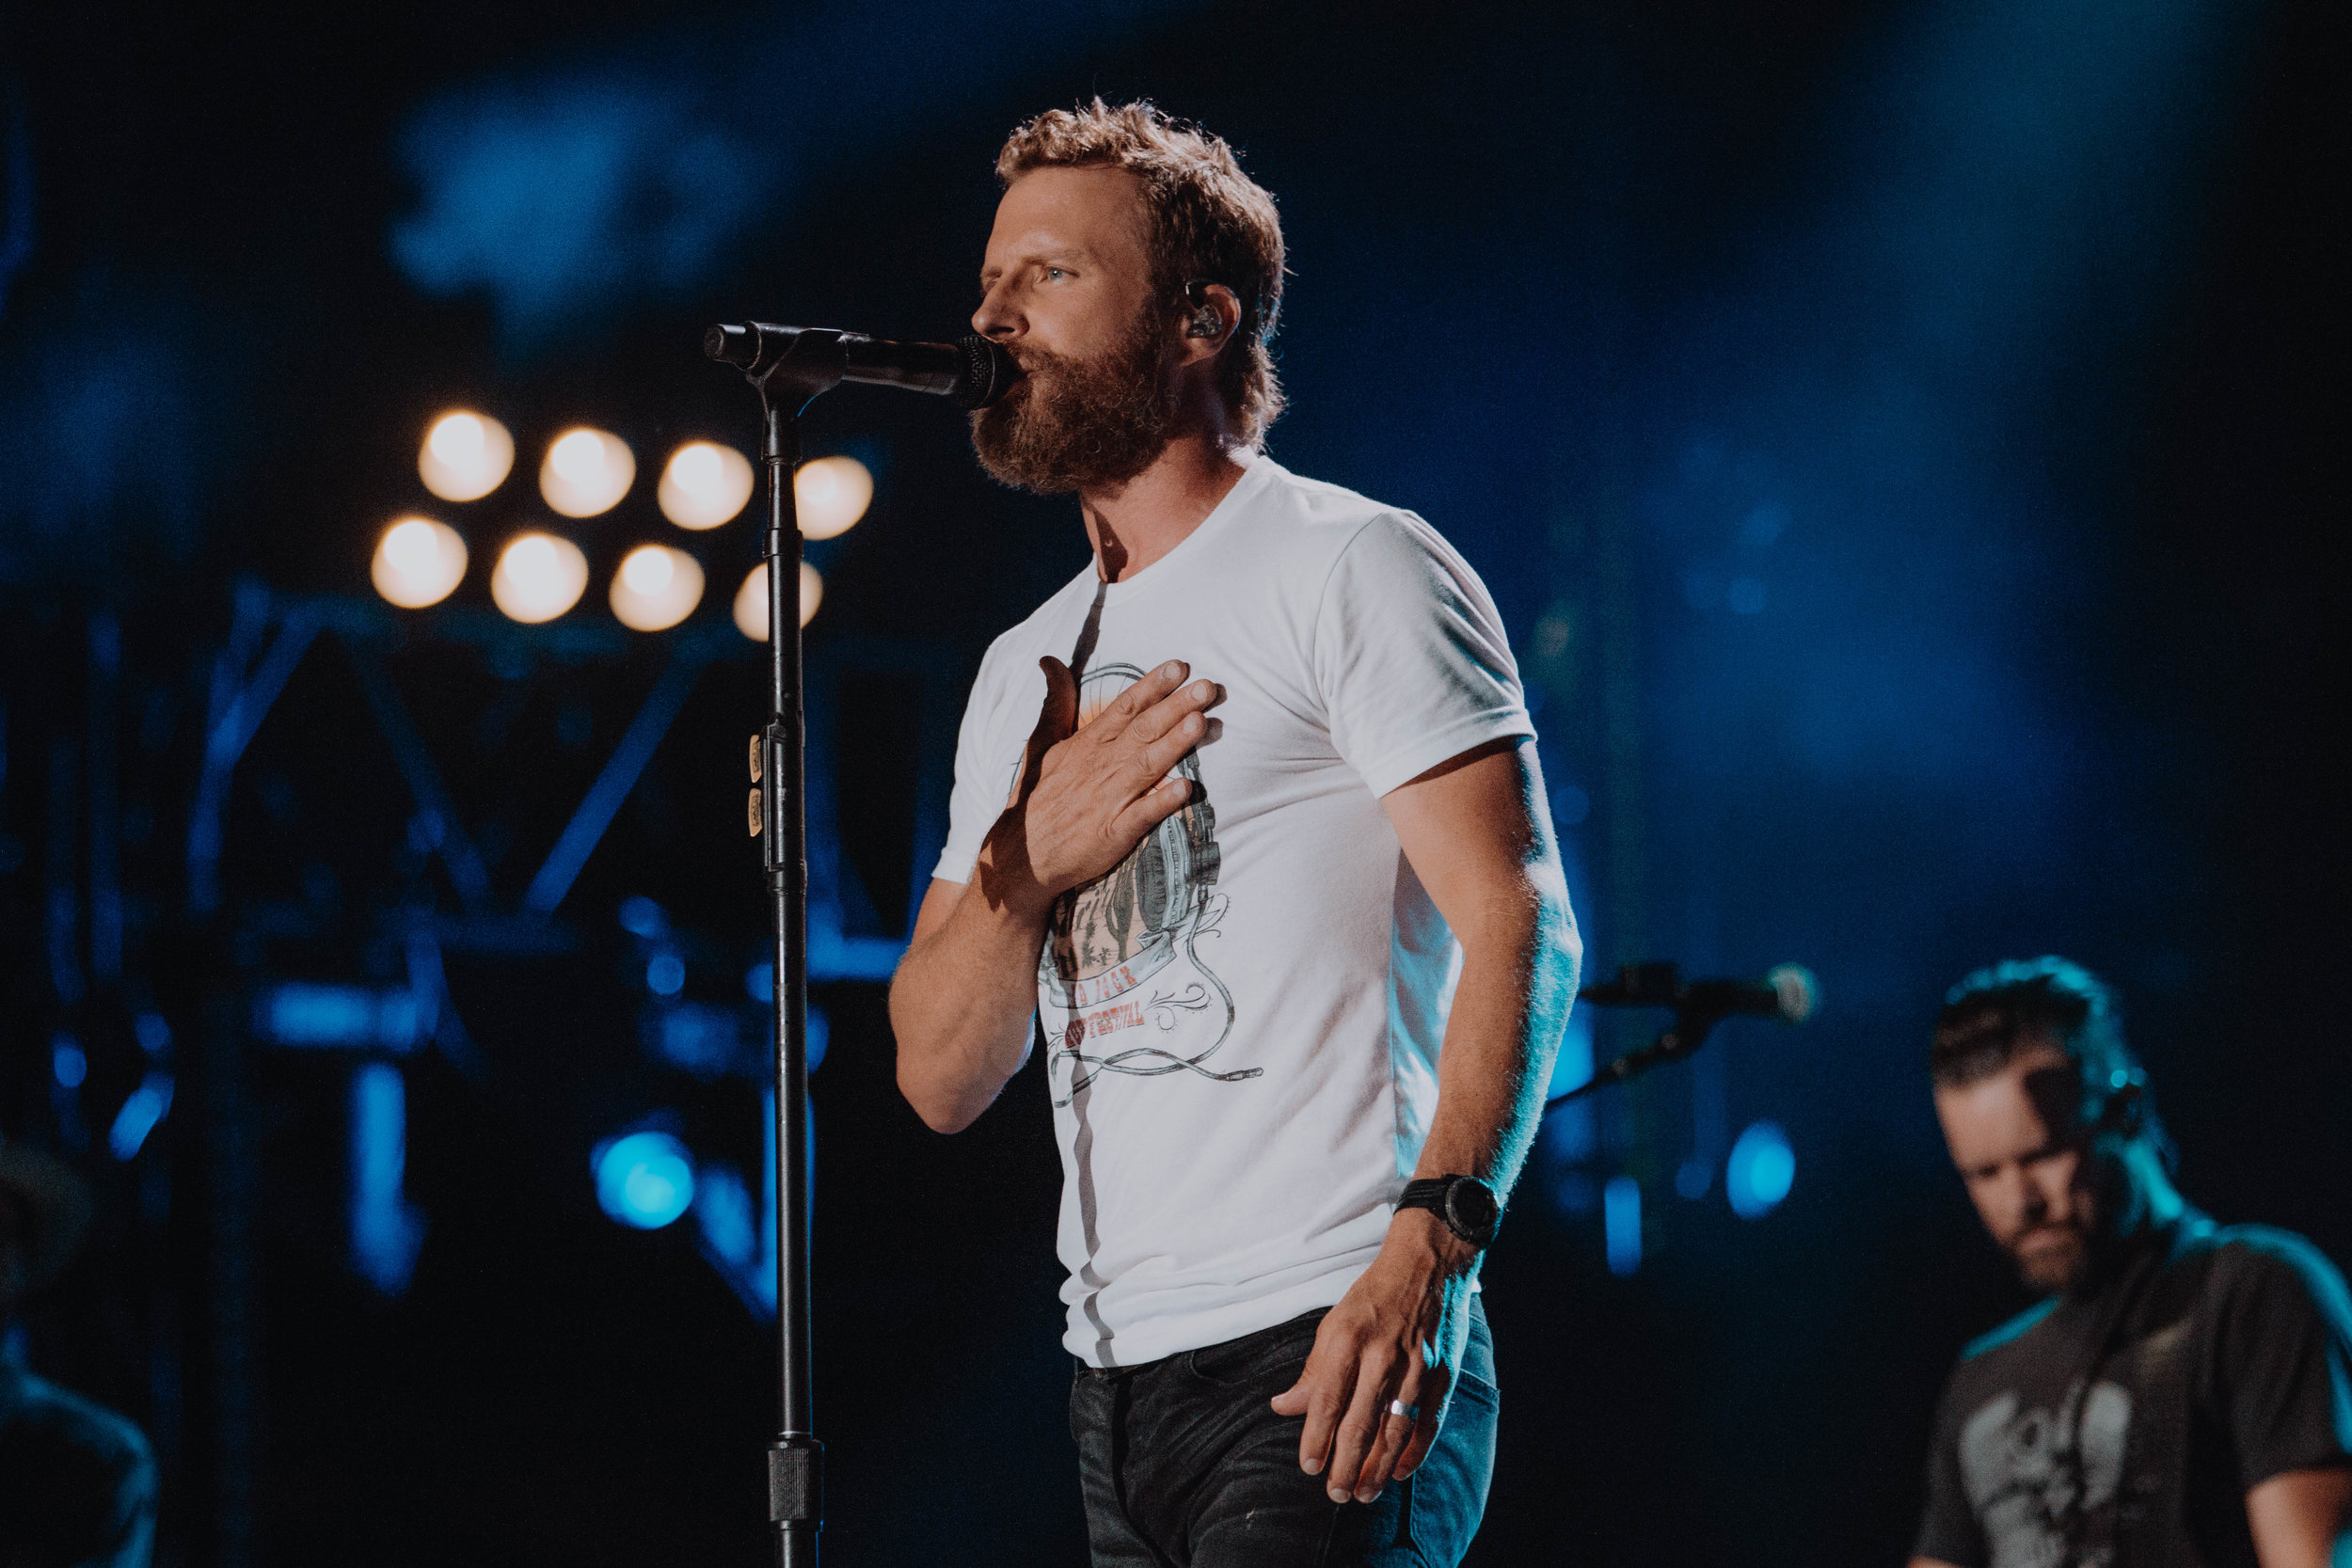 Dierks Bentley at Nissan Stadium for CMA Fest in Nashville, TN on June 10th   This so far is still the biggest show I have ever had the opportunity to photograph. I had never done a stadium show before and there is a certain energy that comes with photographing in a stadium of 69 thousand people. A type of energy I don't think I'll ever be able to explain. Hoping I get a chance to experience it once more next year.